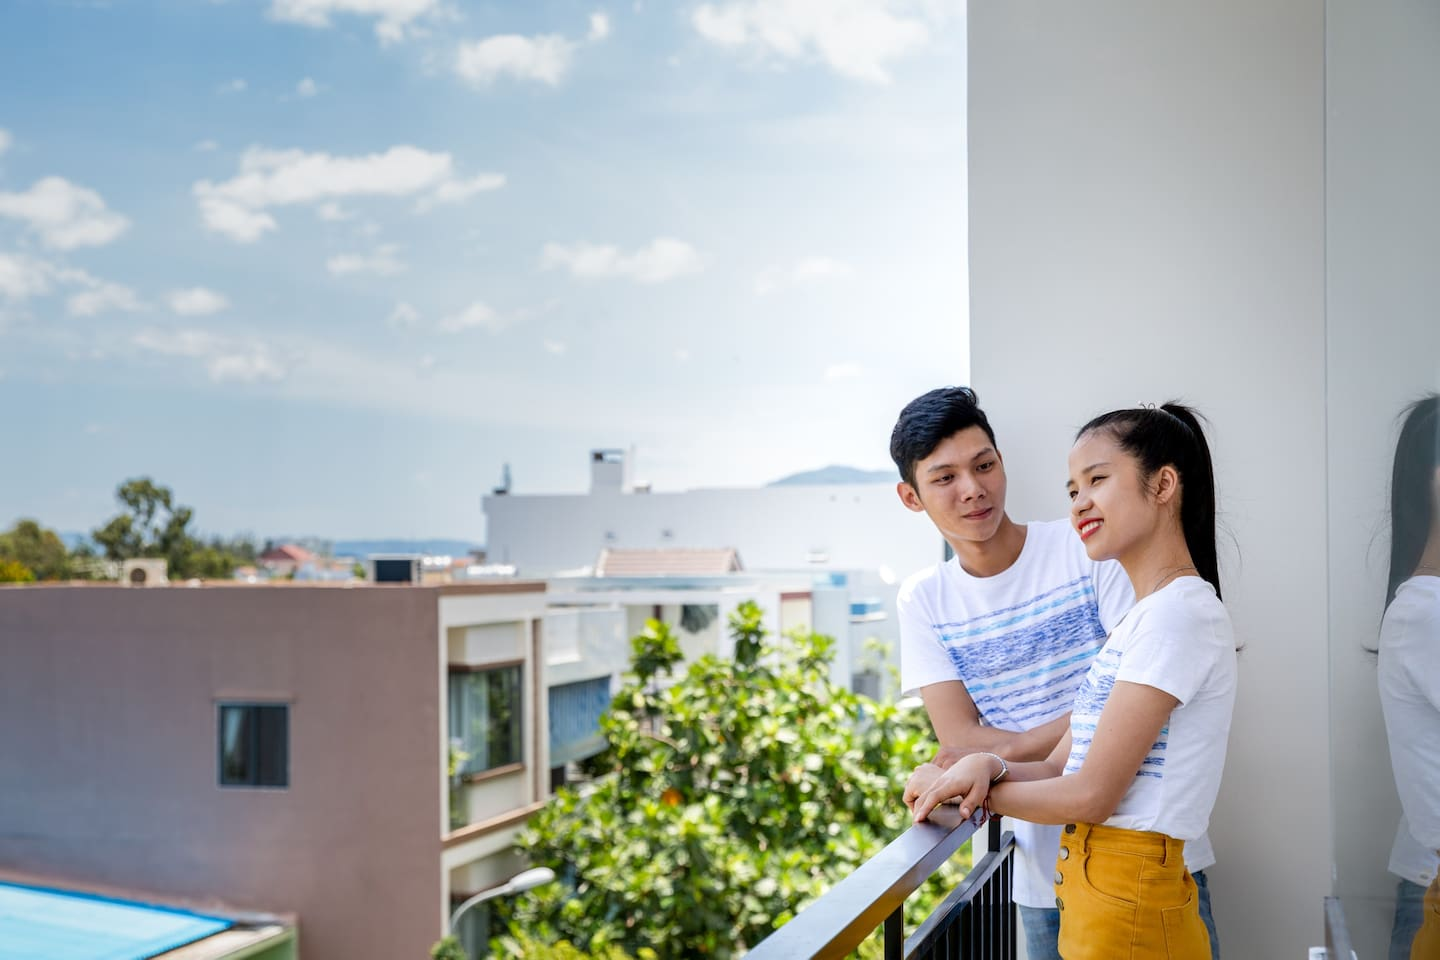 The studio with balcony is very beautiful and fresh. You can see everything in the city. Every night you can seat here to drink a lot of coffee or tea. Is it perfect? You can also clothesline here.